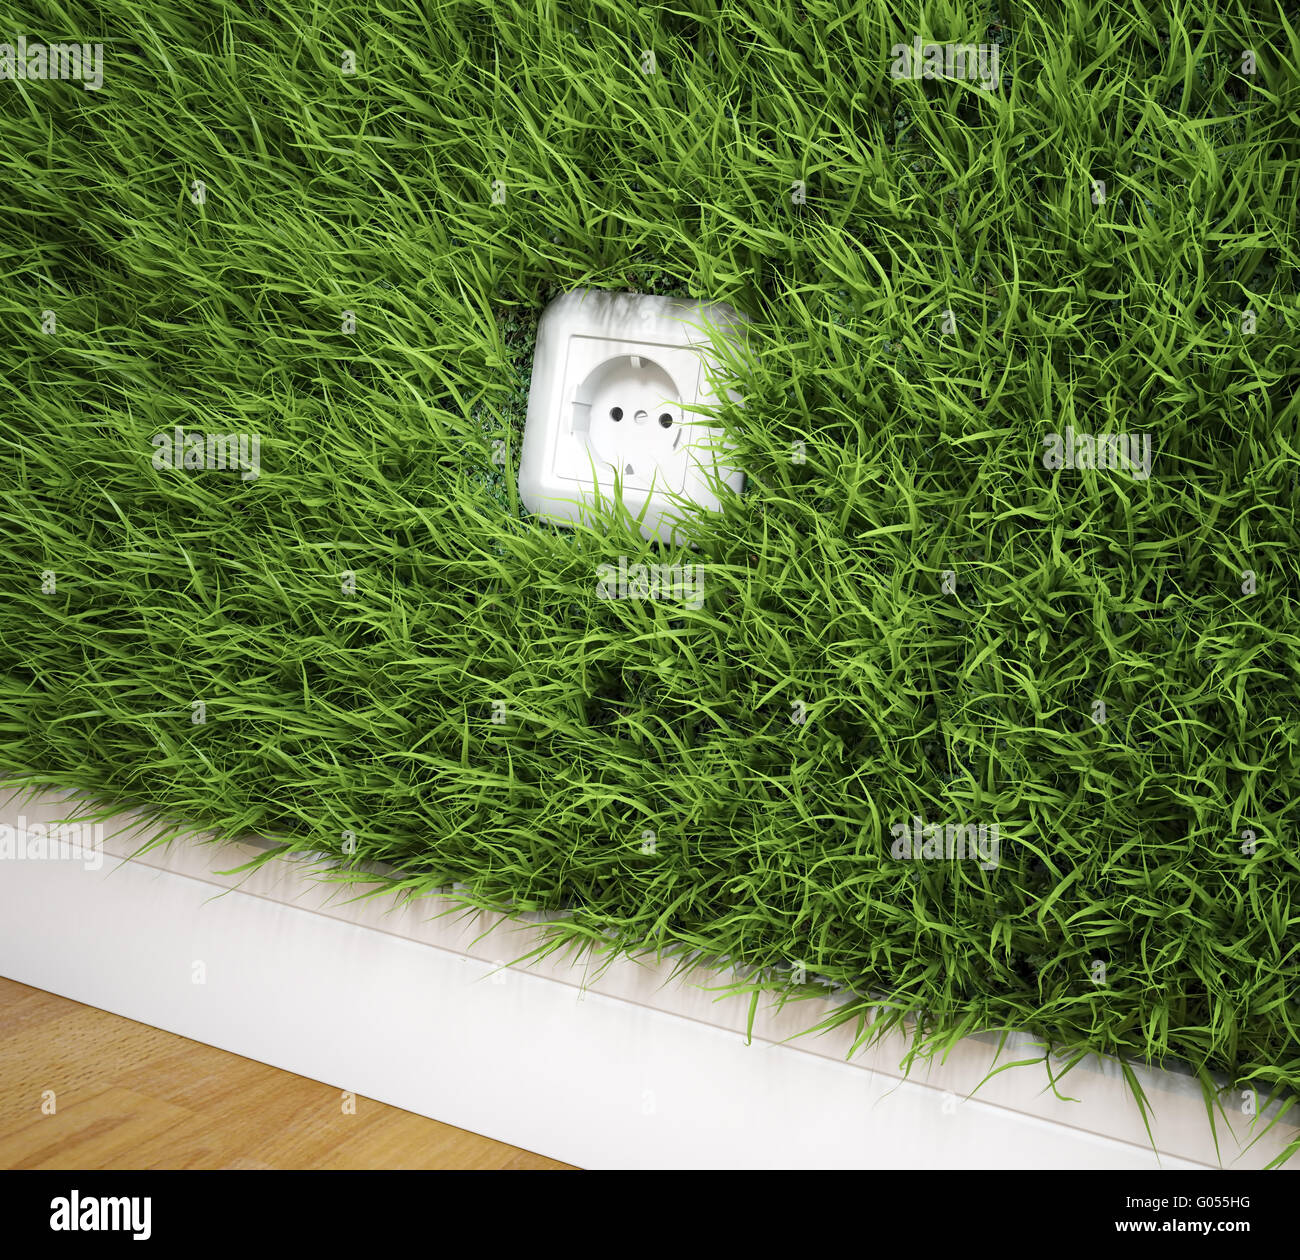 An electrical socket on a grass covered wall - Stock Image